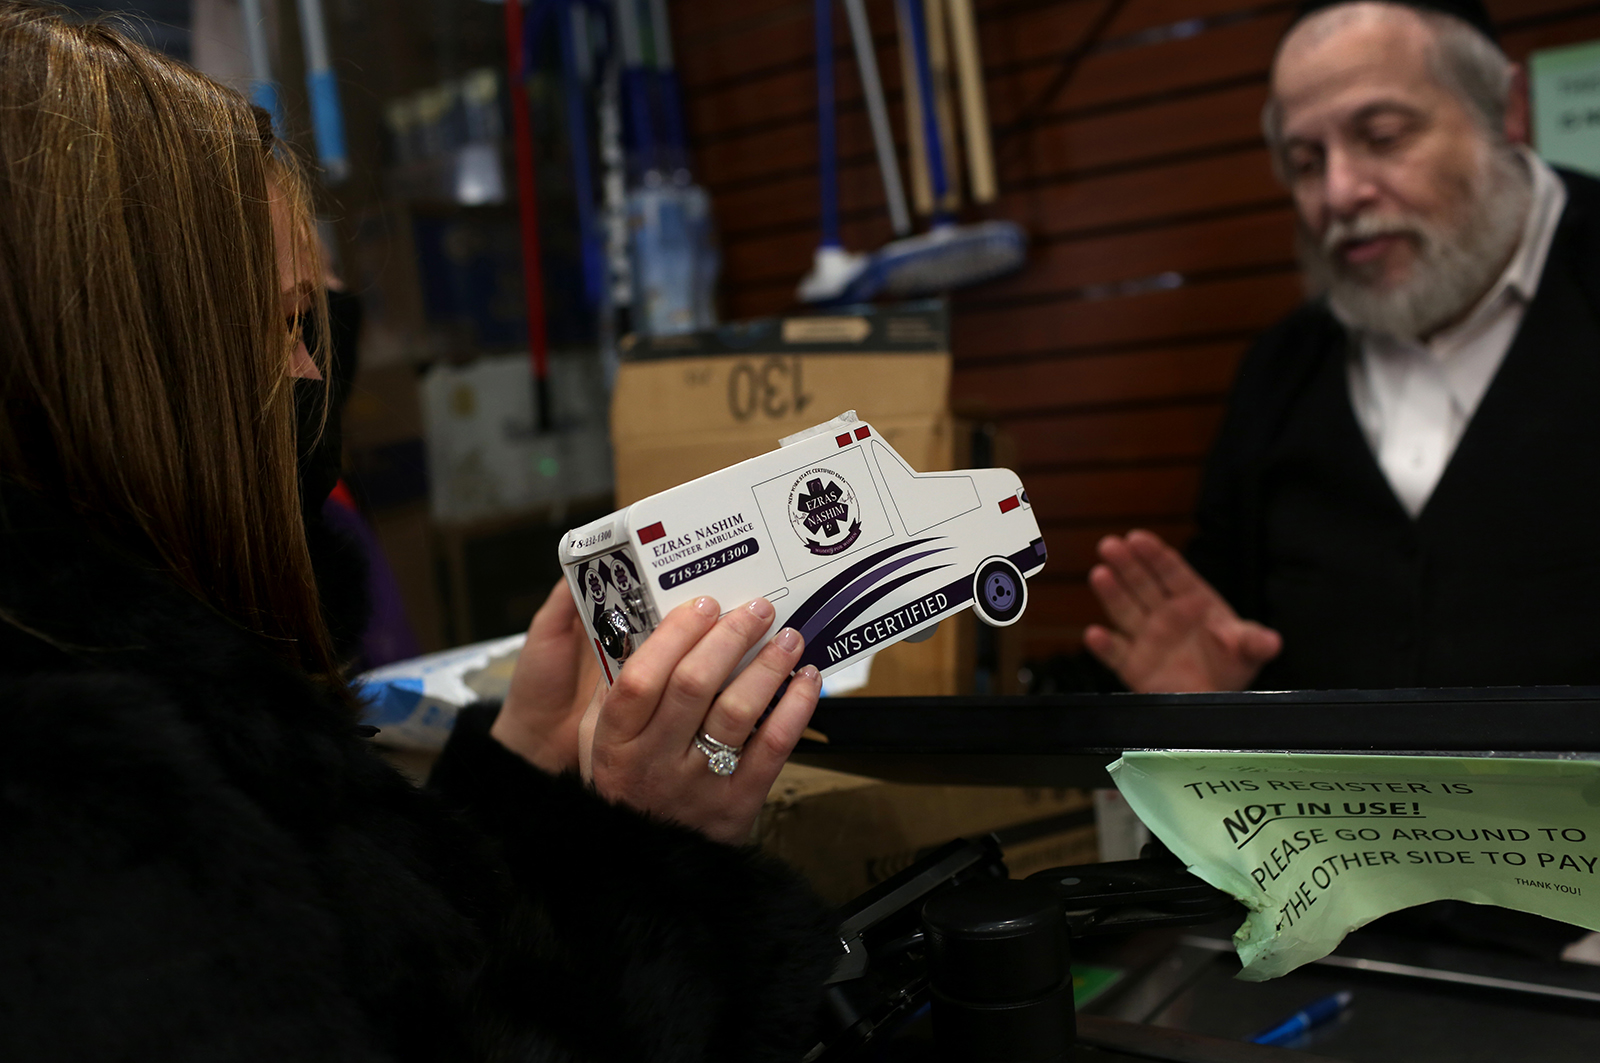 Leah Levine, 22, Ezrash Nashim COO, asks Herman Einhorn, owner of Einhorn's supermarket in Borough Park in Brooklyn, New York, to feature her organization's donations piggy bank in his store on December 06, 2020.  Einhorn, who does not feature the all-male EMT Hatzolah's piggy bank either, said he may consider it. (Photo by: Yana Paskova for The New York Times/the National Geographic Society)